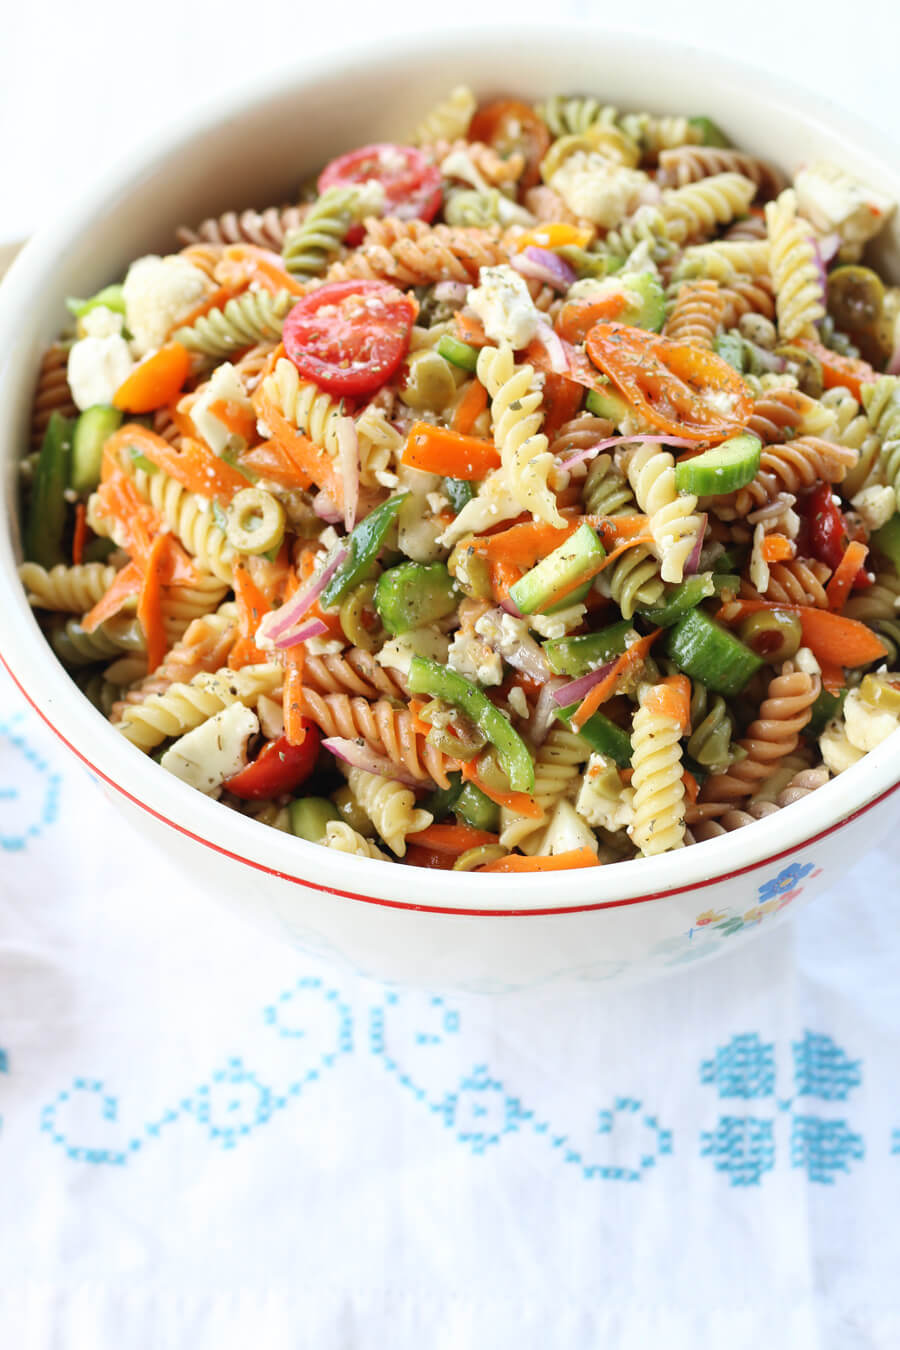 Zesty Italian Pasta Salad | Buy This Cook That  Get our delicious go-to recipe for Italian Pasta Salad. With colorful, healthy vegetables, a tangy dressing, and tri-color pasta, this side dish always pleases.   Easy to make ahead, too.   #Italianpastasalad #pastasalad